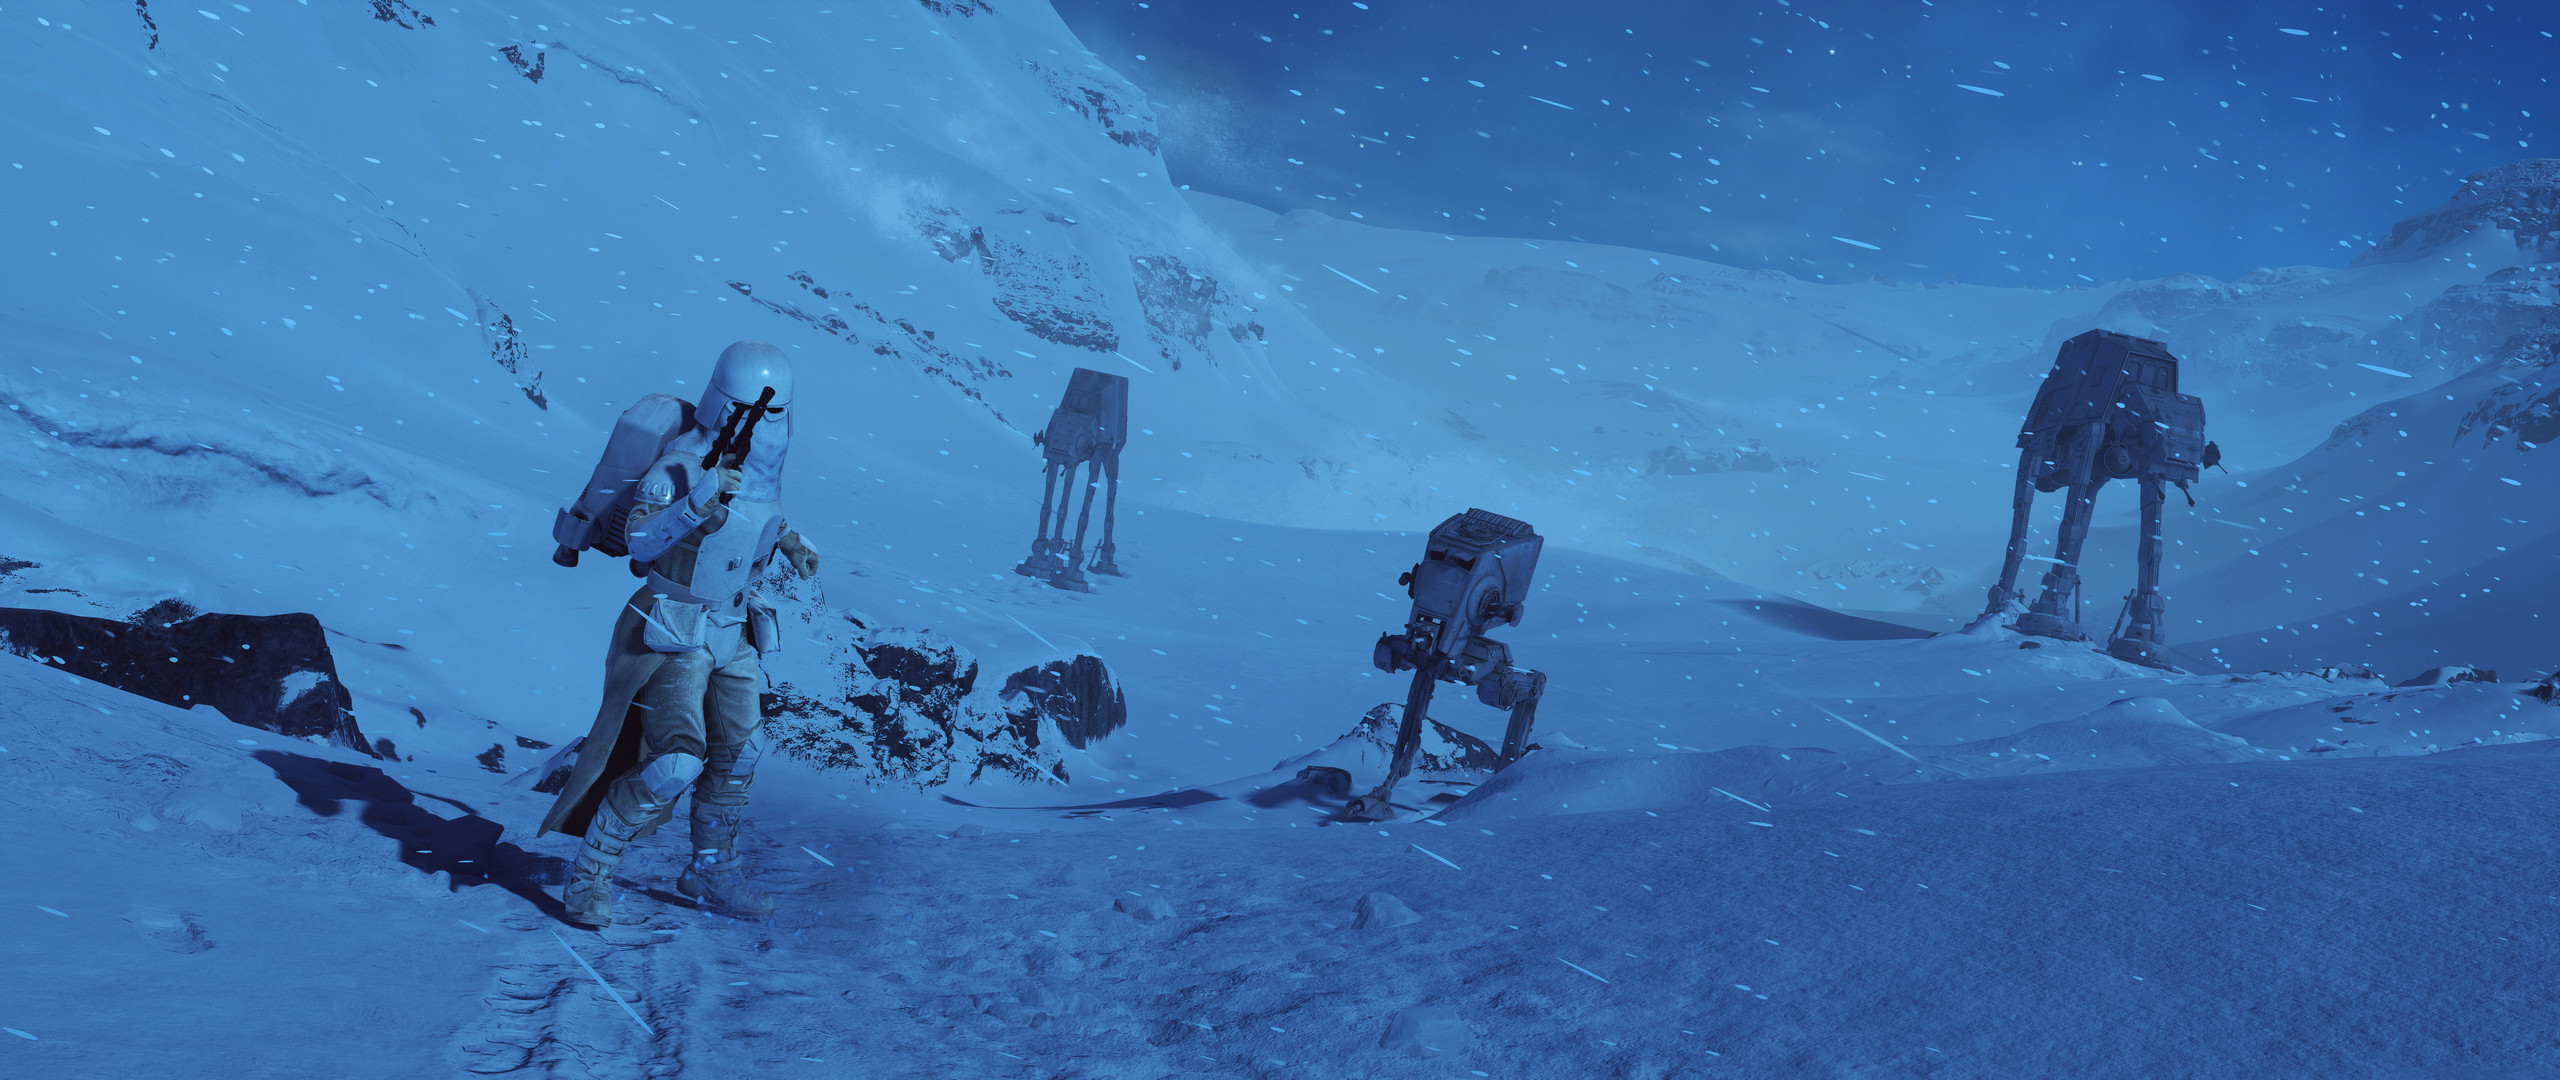 2560x1080 Video Game - Star Wars Battlefront (2015) Snowtrooper AT-AT Walker Wallpaper